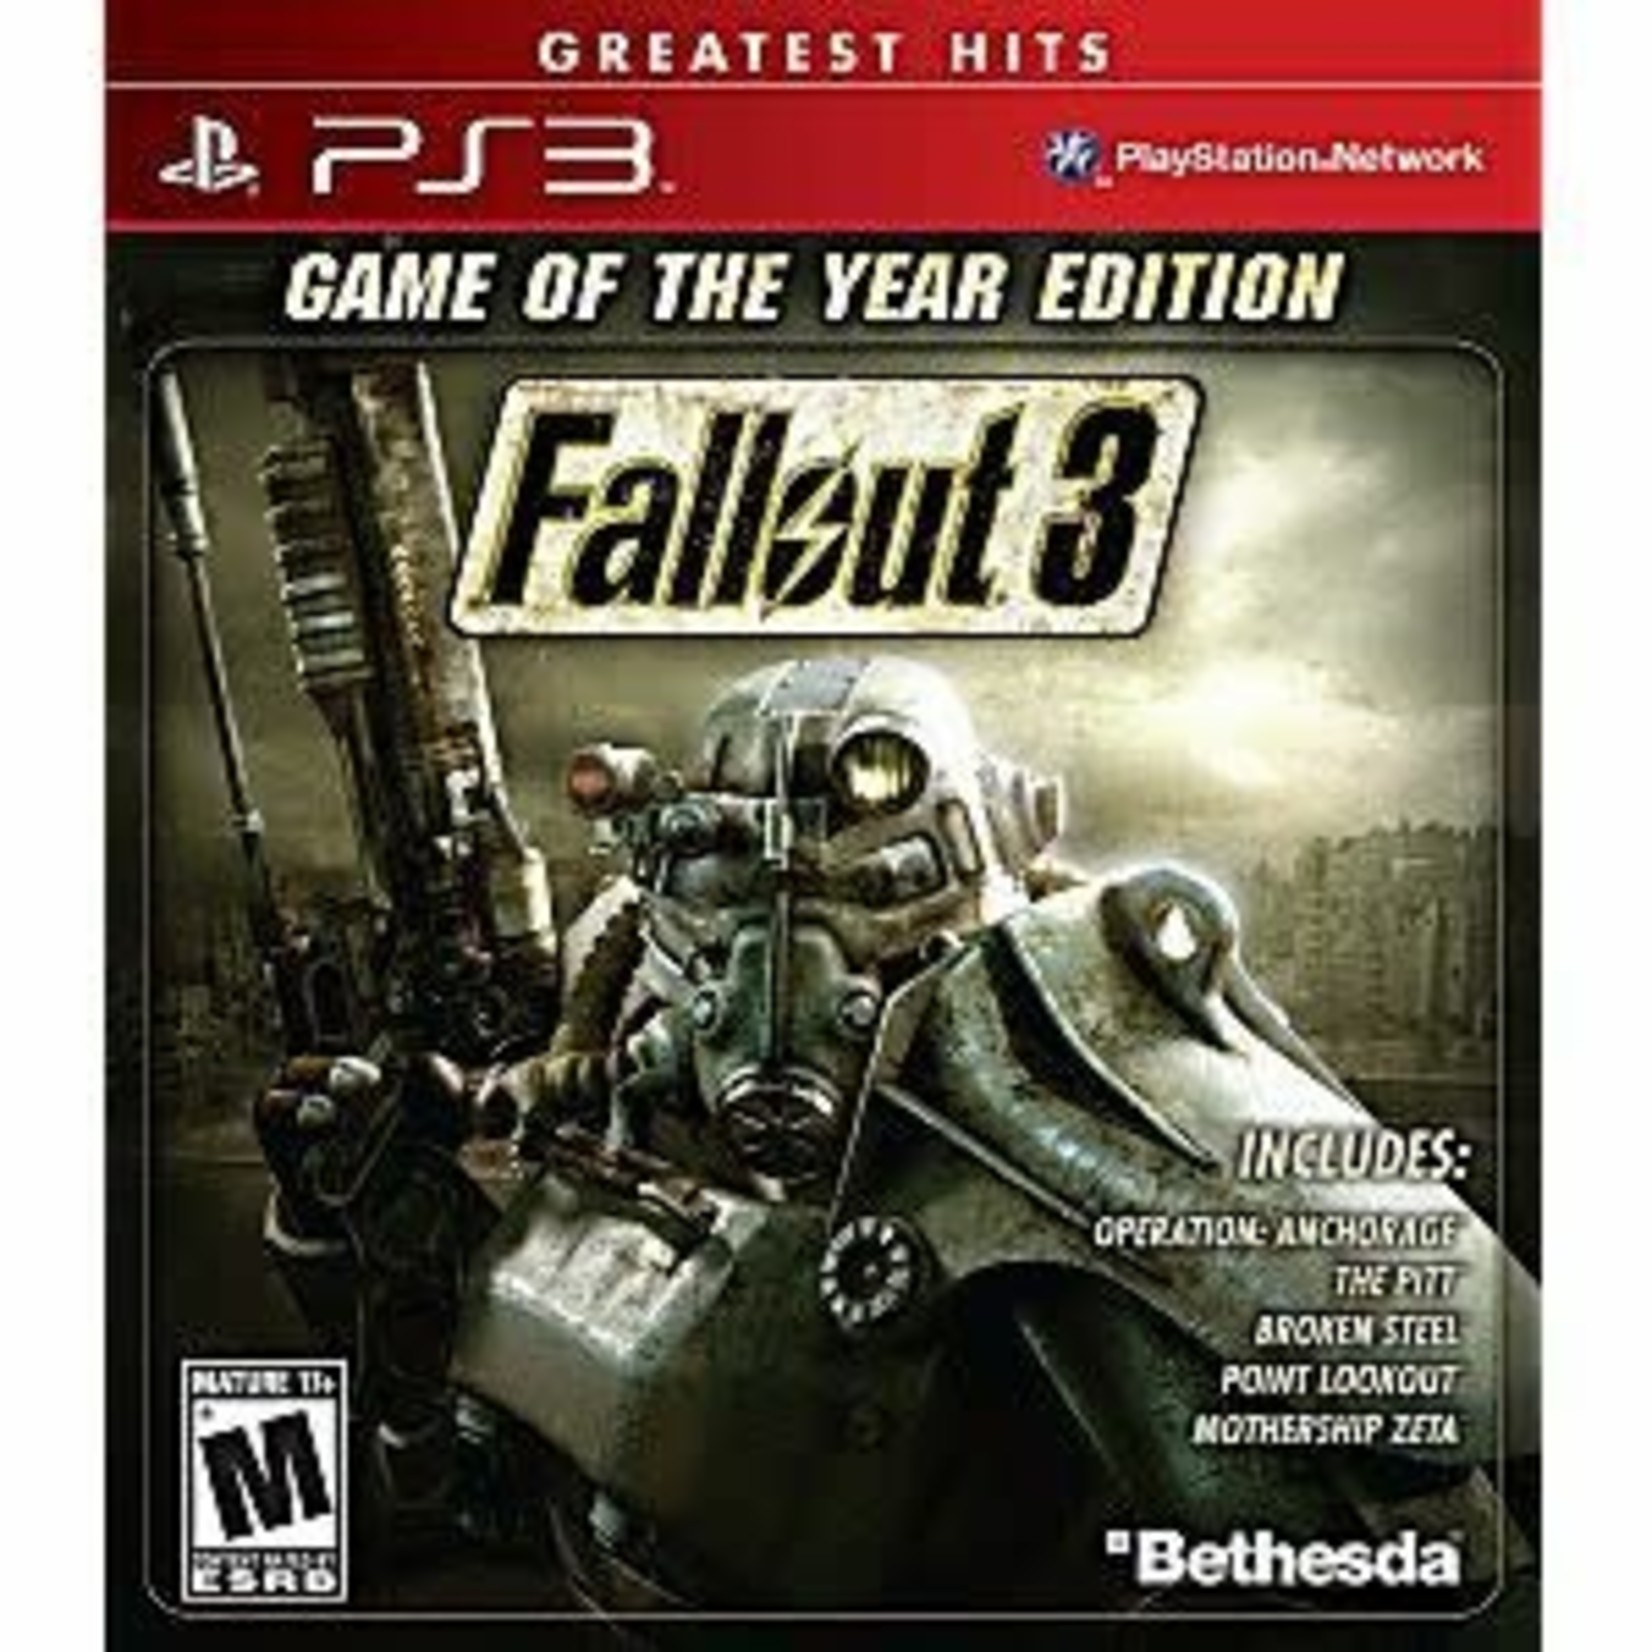 PS3-Fallout 3 Game of the Year Edition